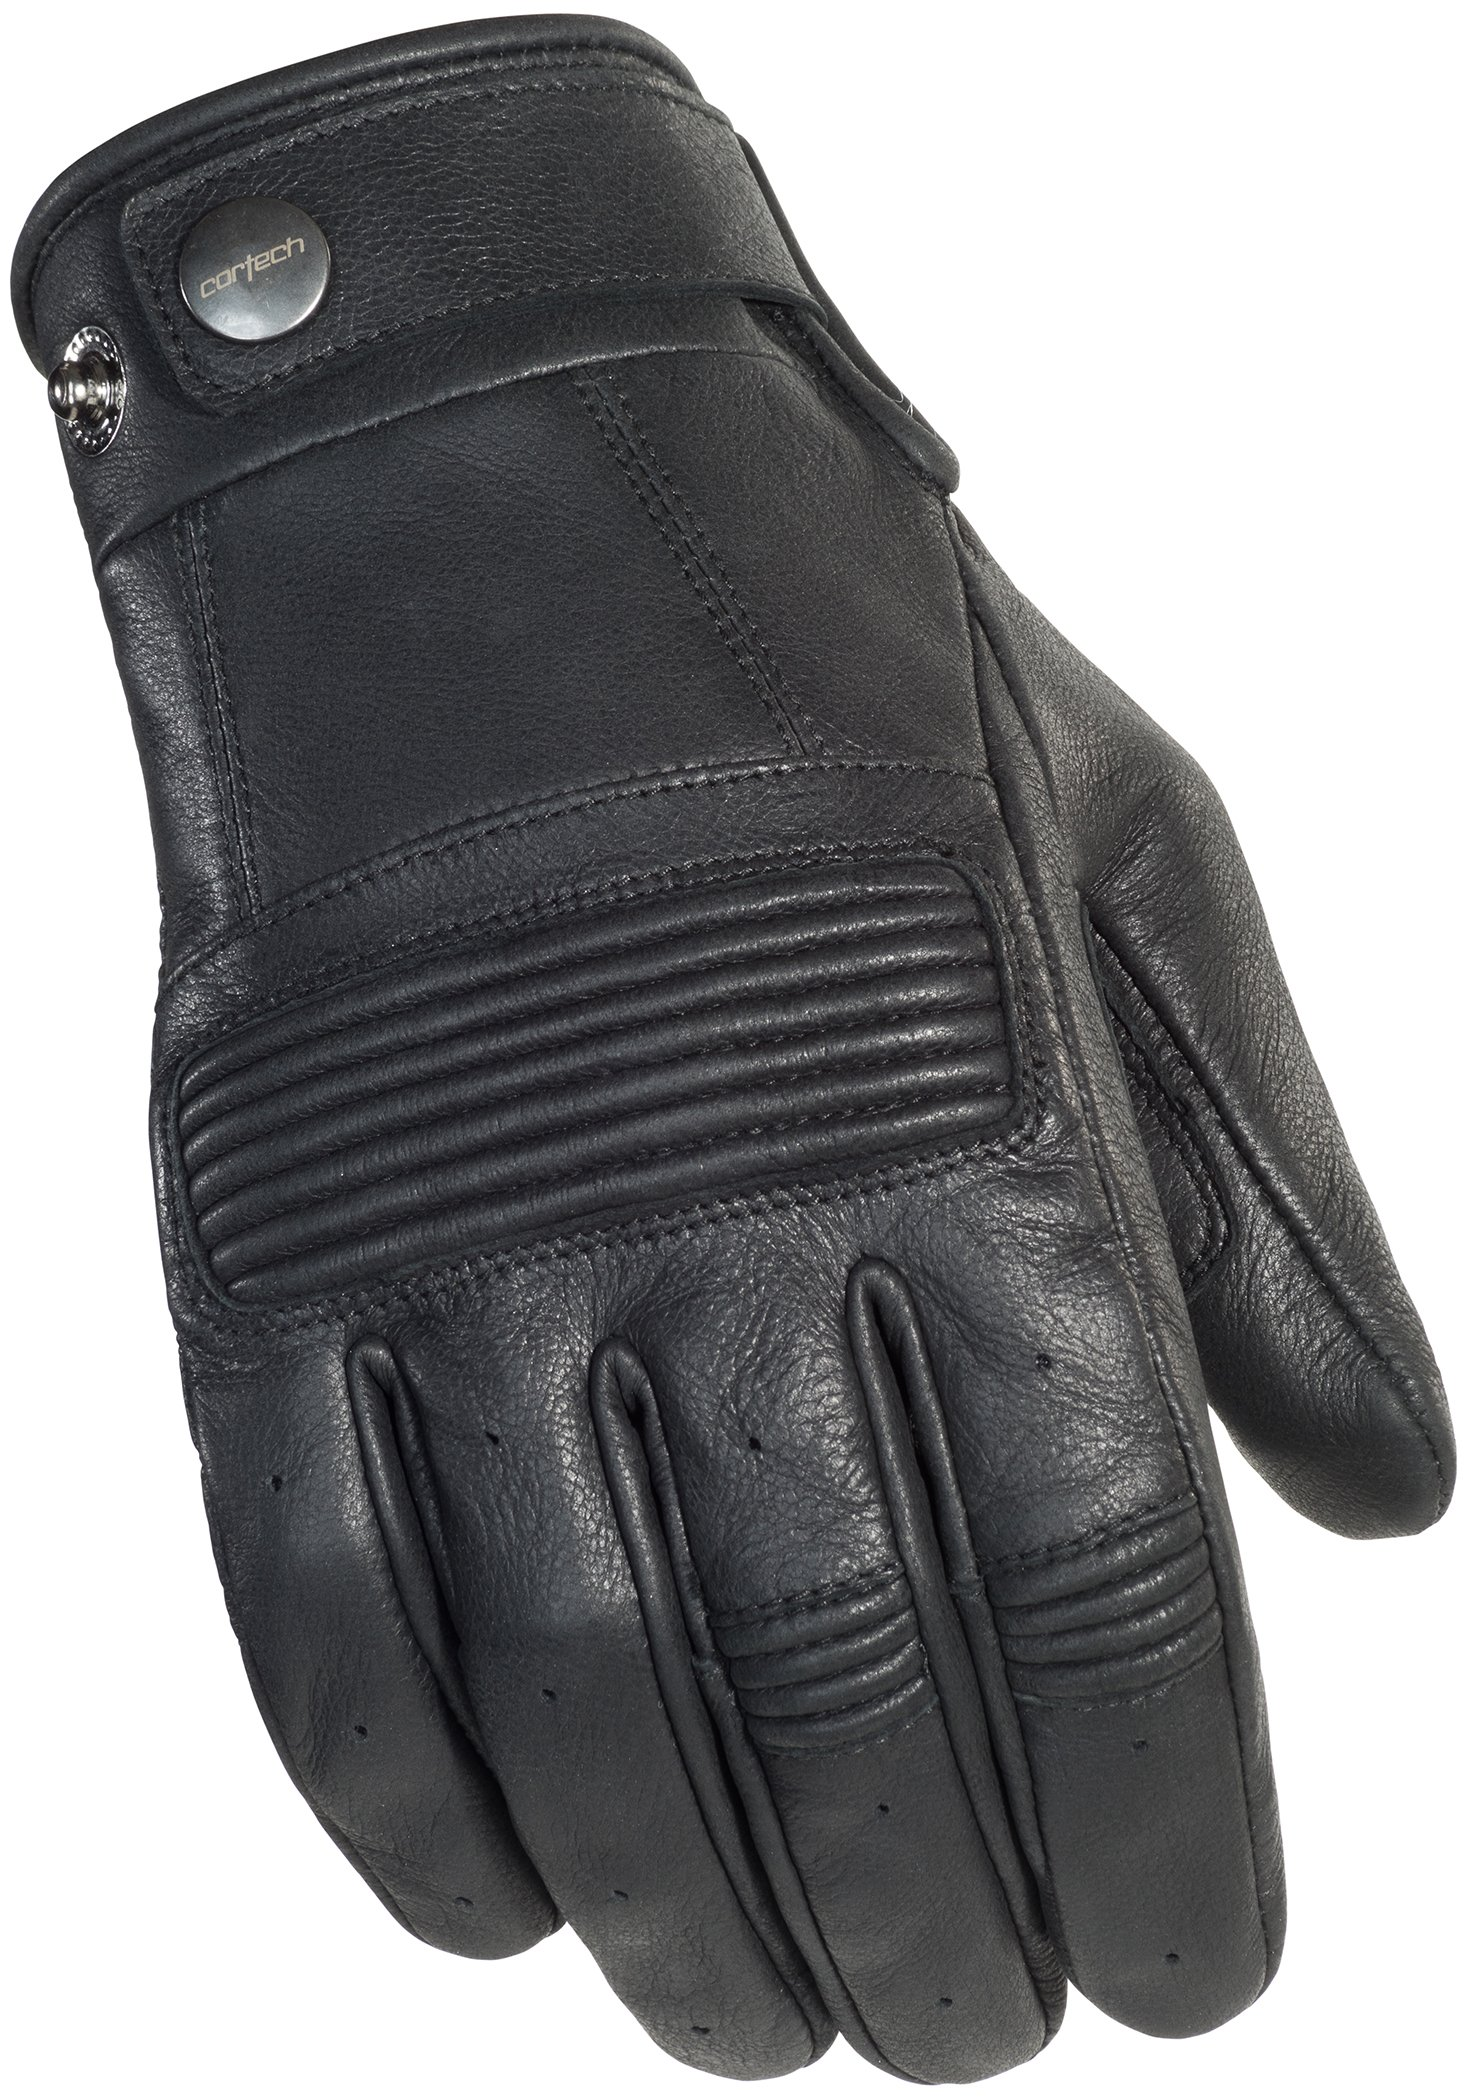 Cortech Men's Duster Leather Motorcycle Gloves (Black, XX-Large)